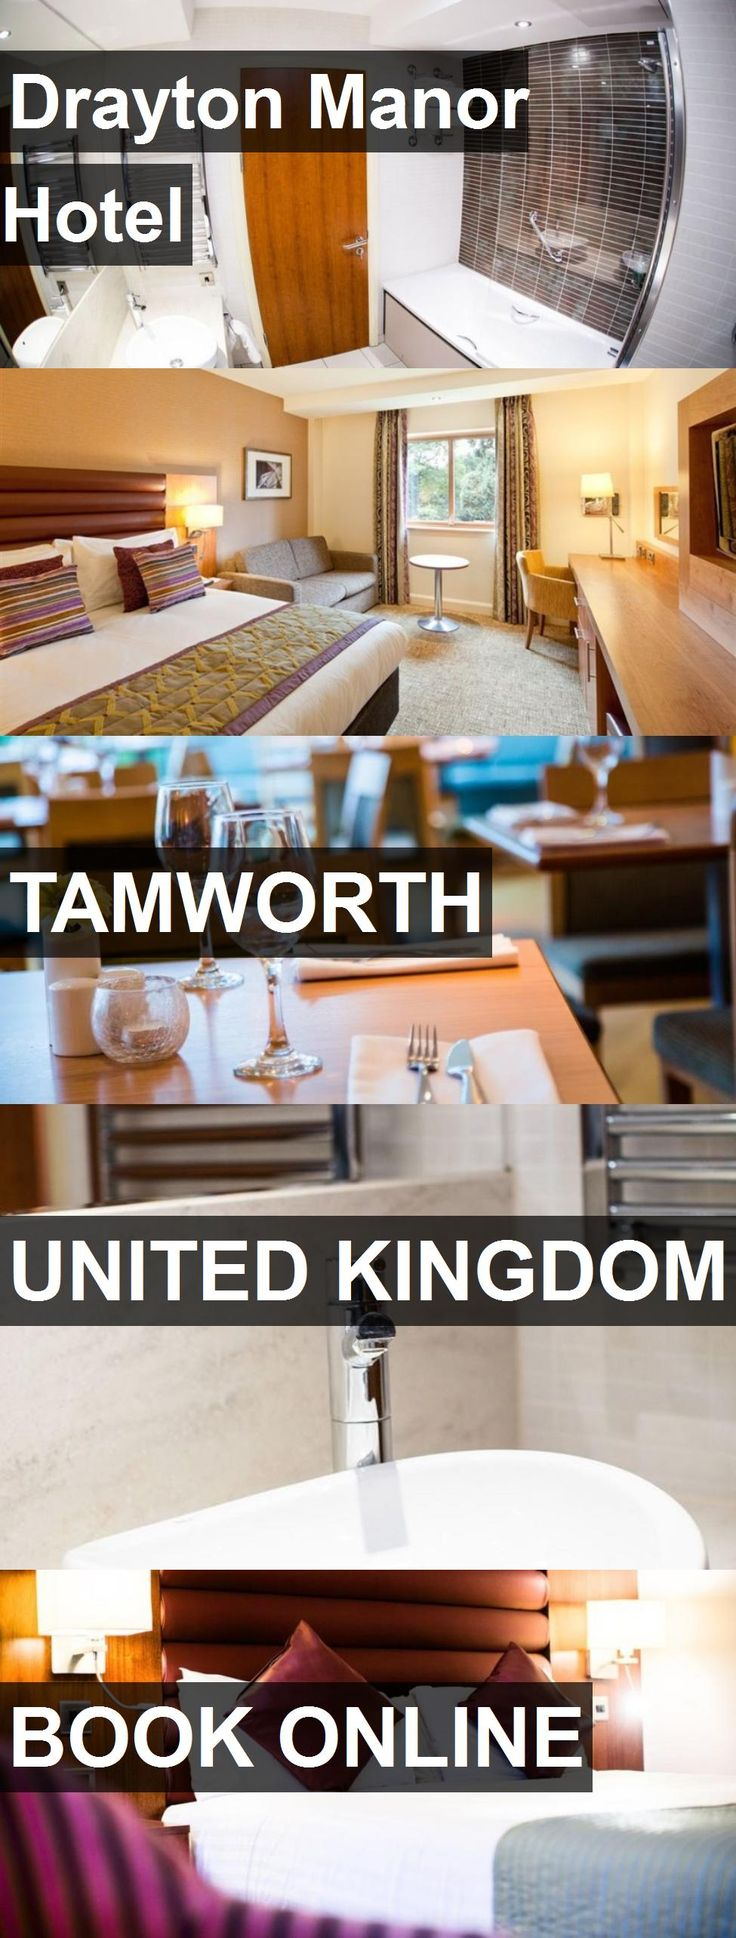 Drayton Manor Hotel in Tamworth, United Kingdom. For more information, photos, reviews and best prices please follow the link. #UnitedKingdom #Tamworth #travel #vacation #hotel